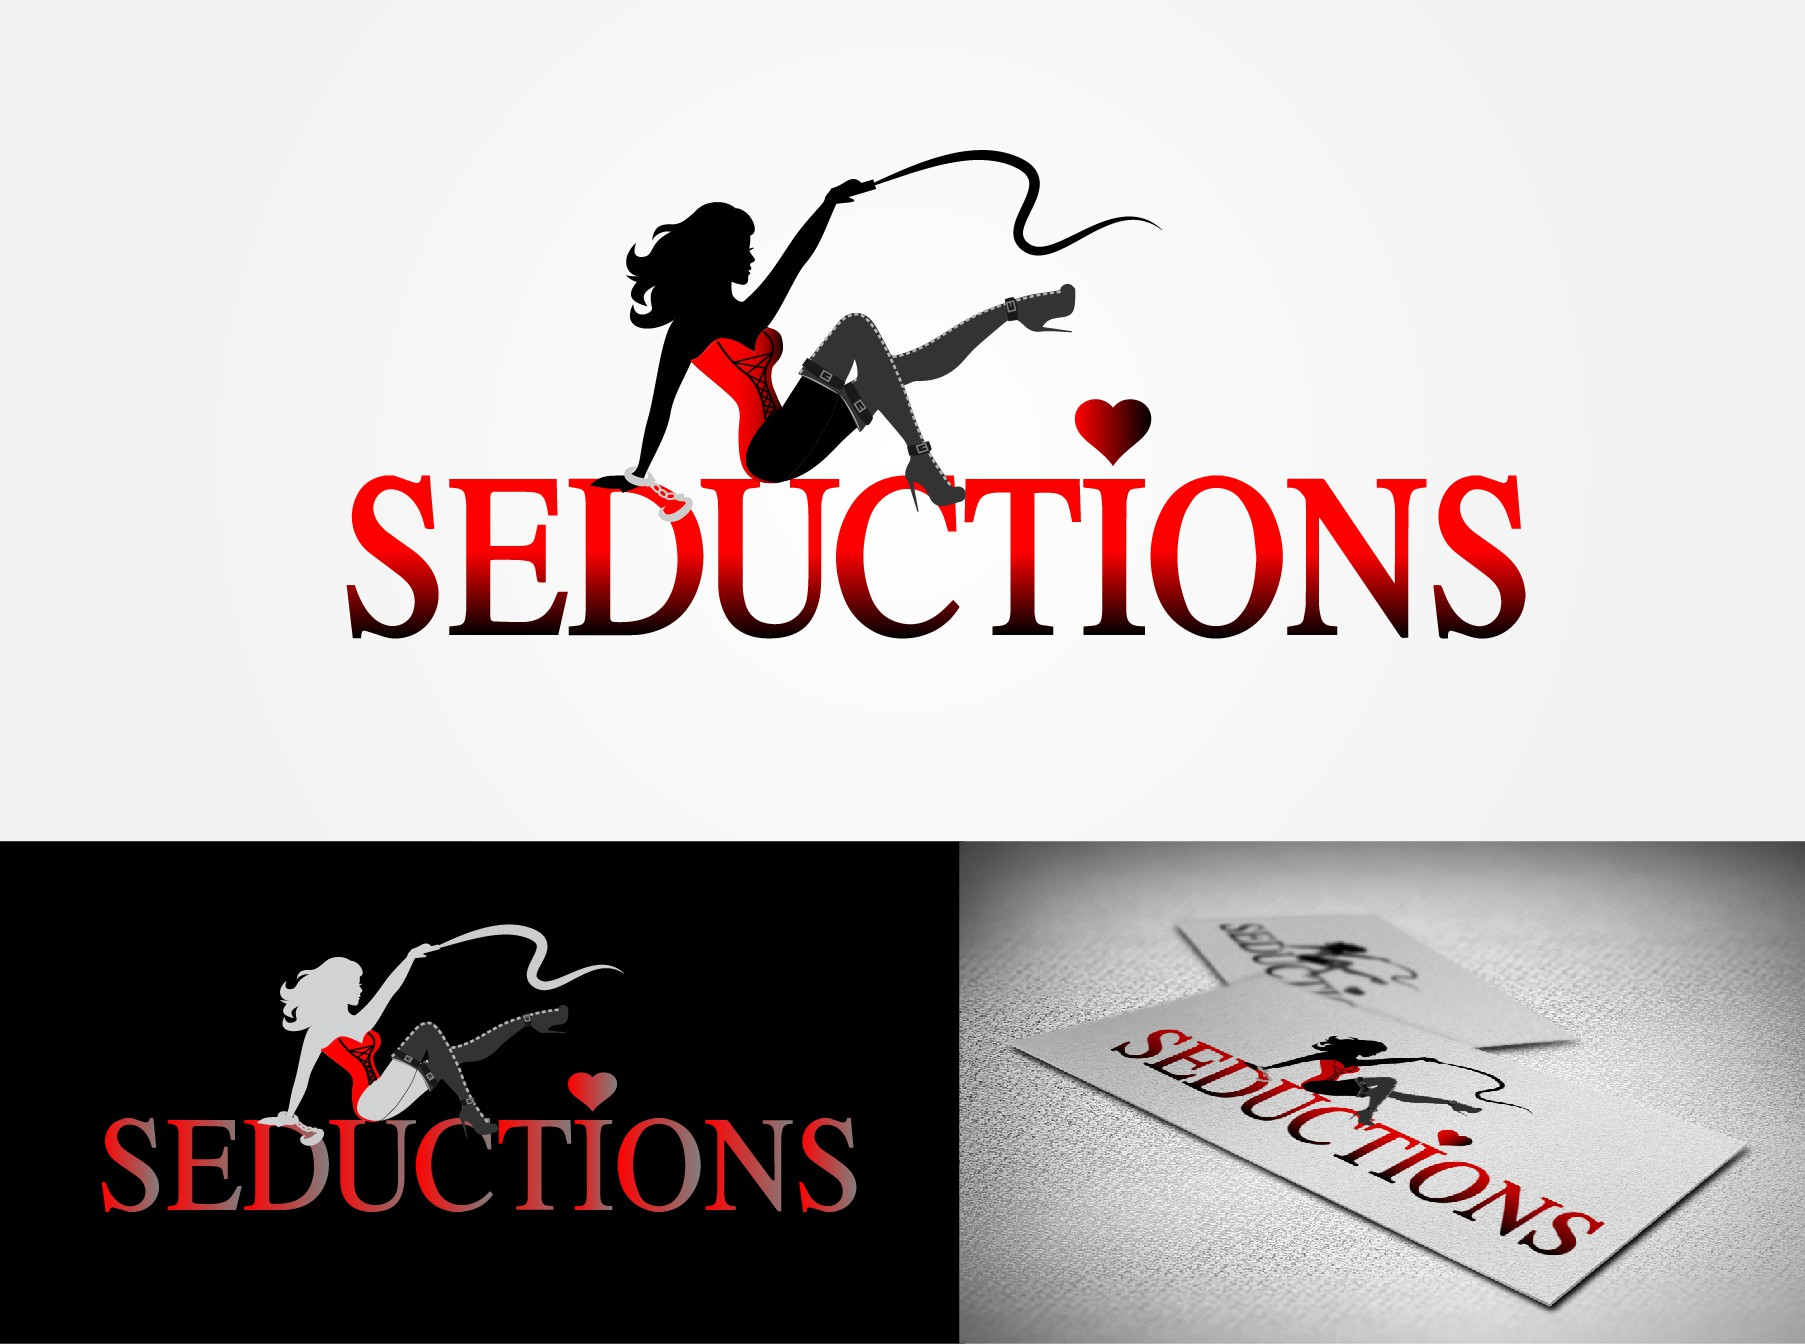 New logo wanted for Seductions